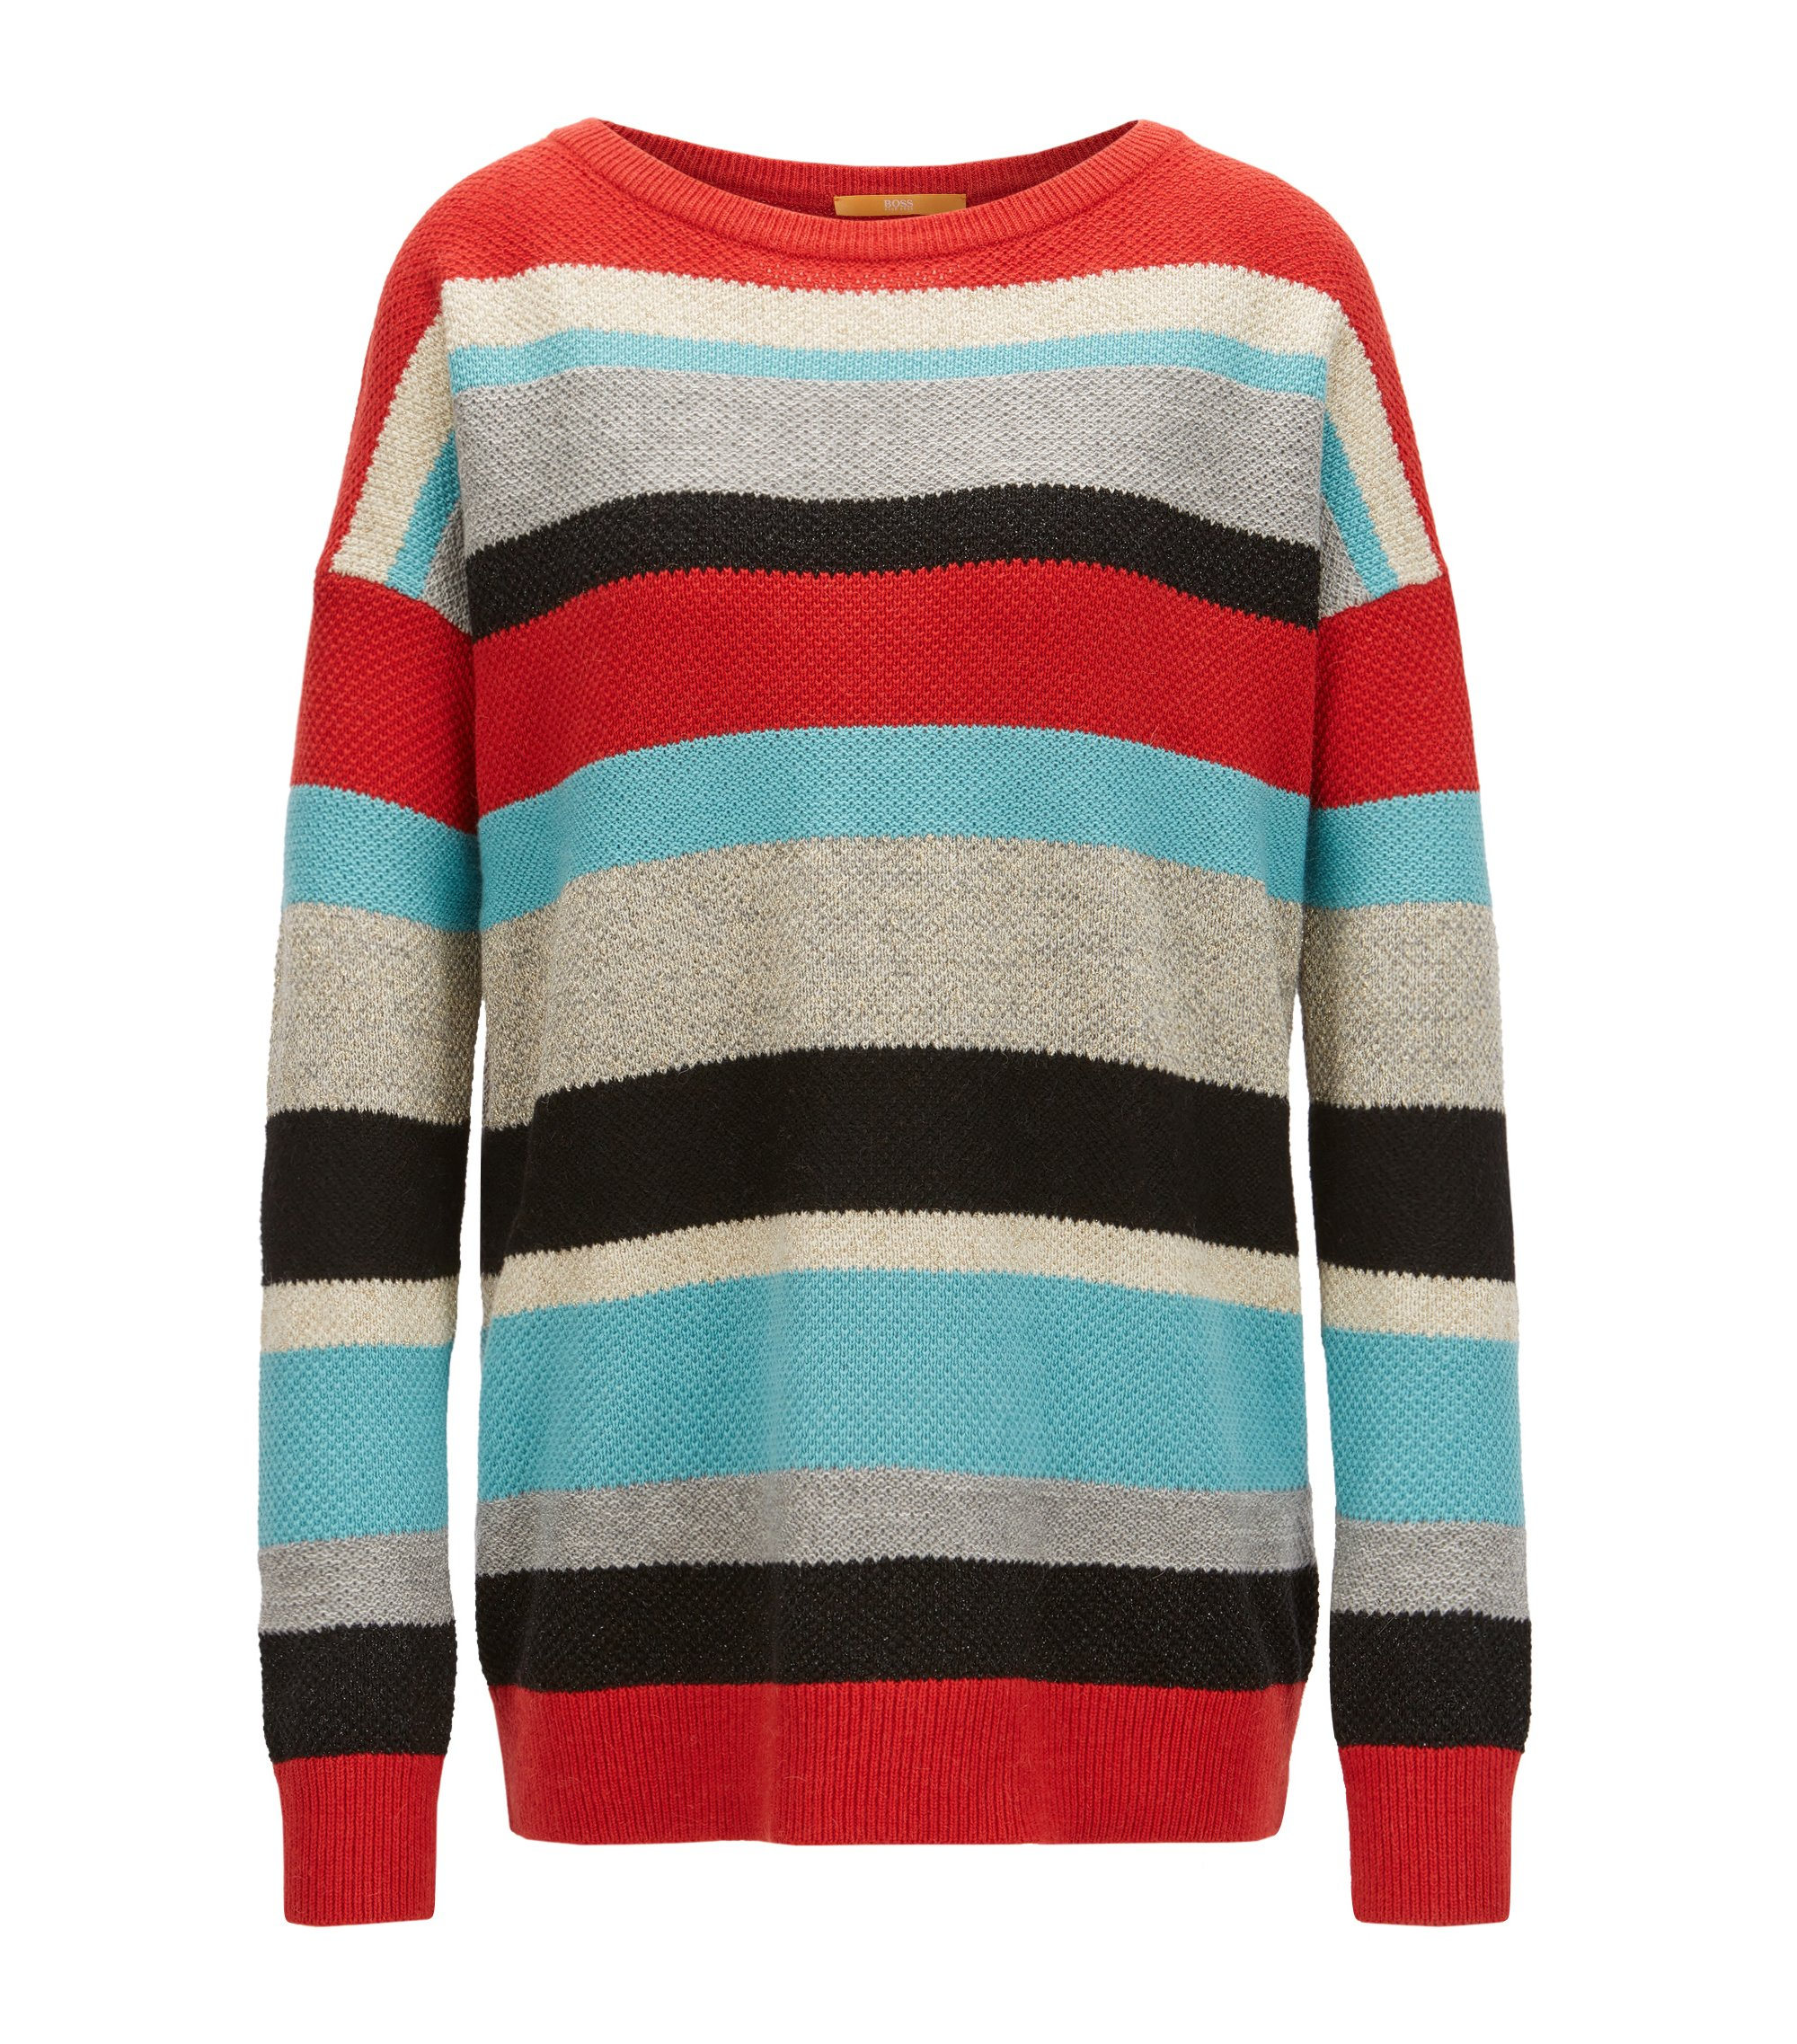 Multi-colour striped sweater in a structured knit, Patterned